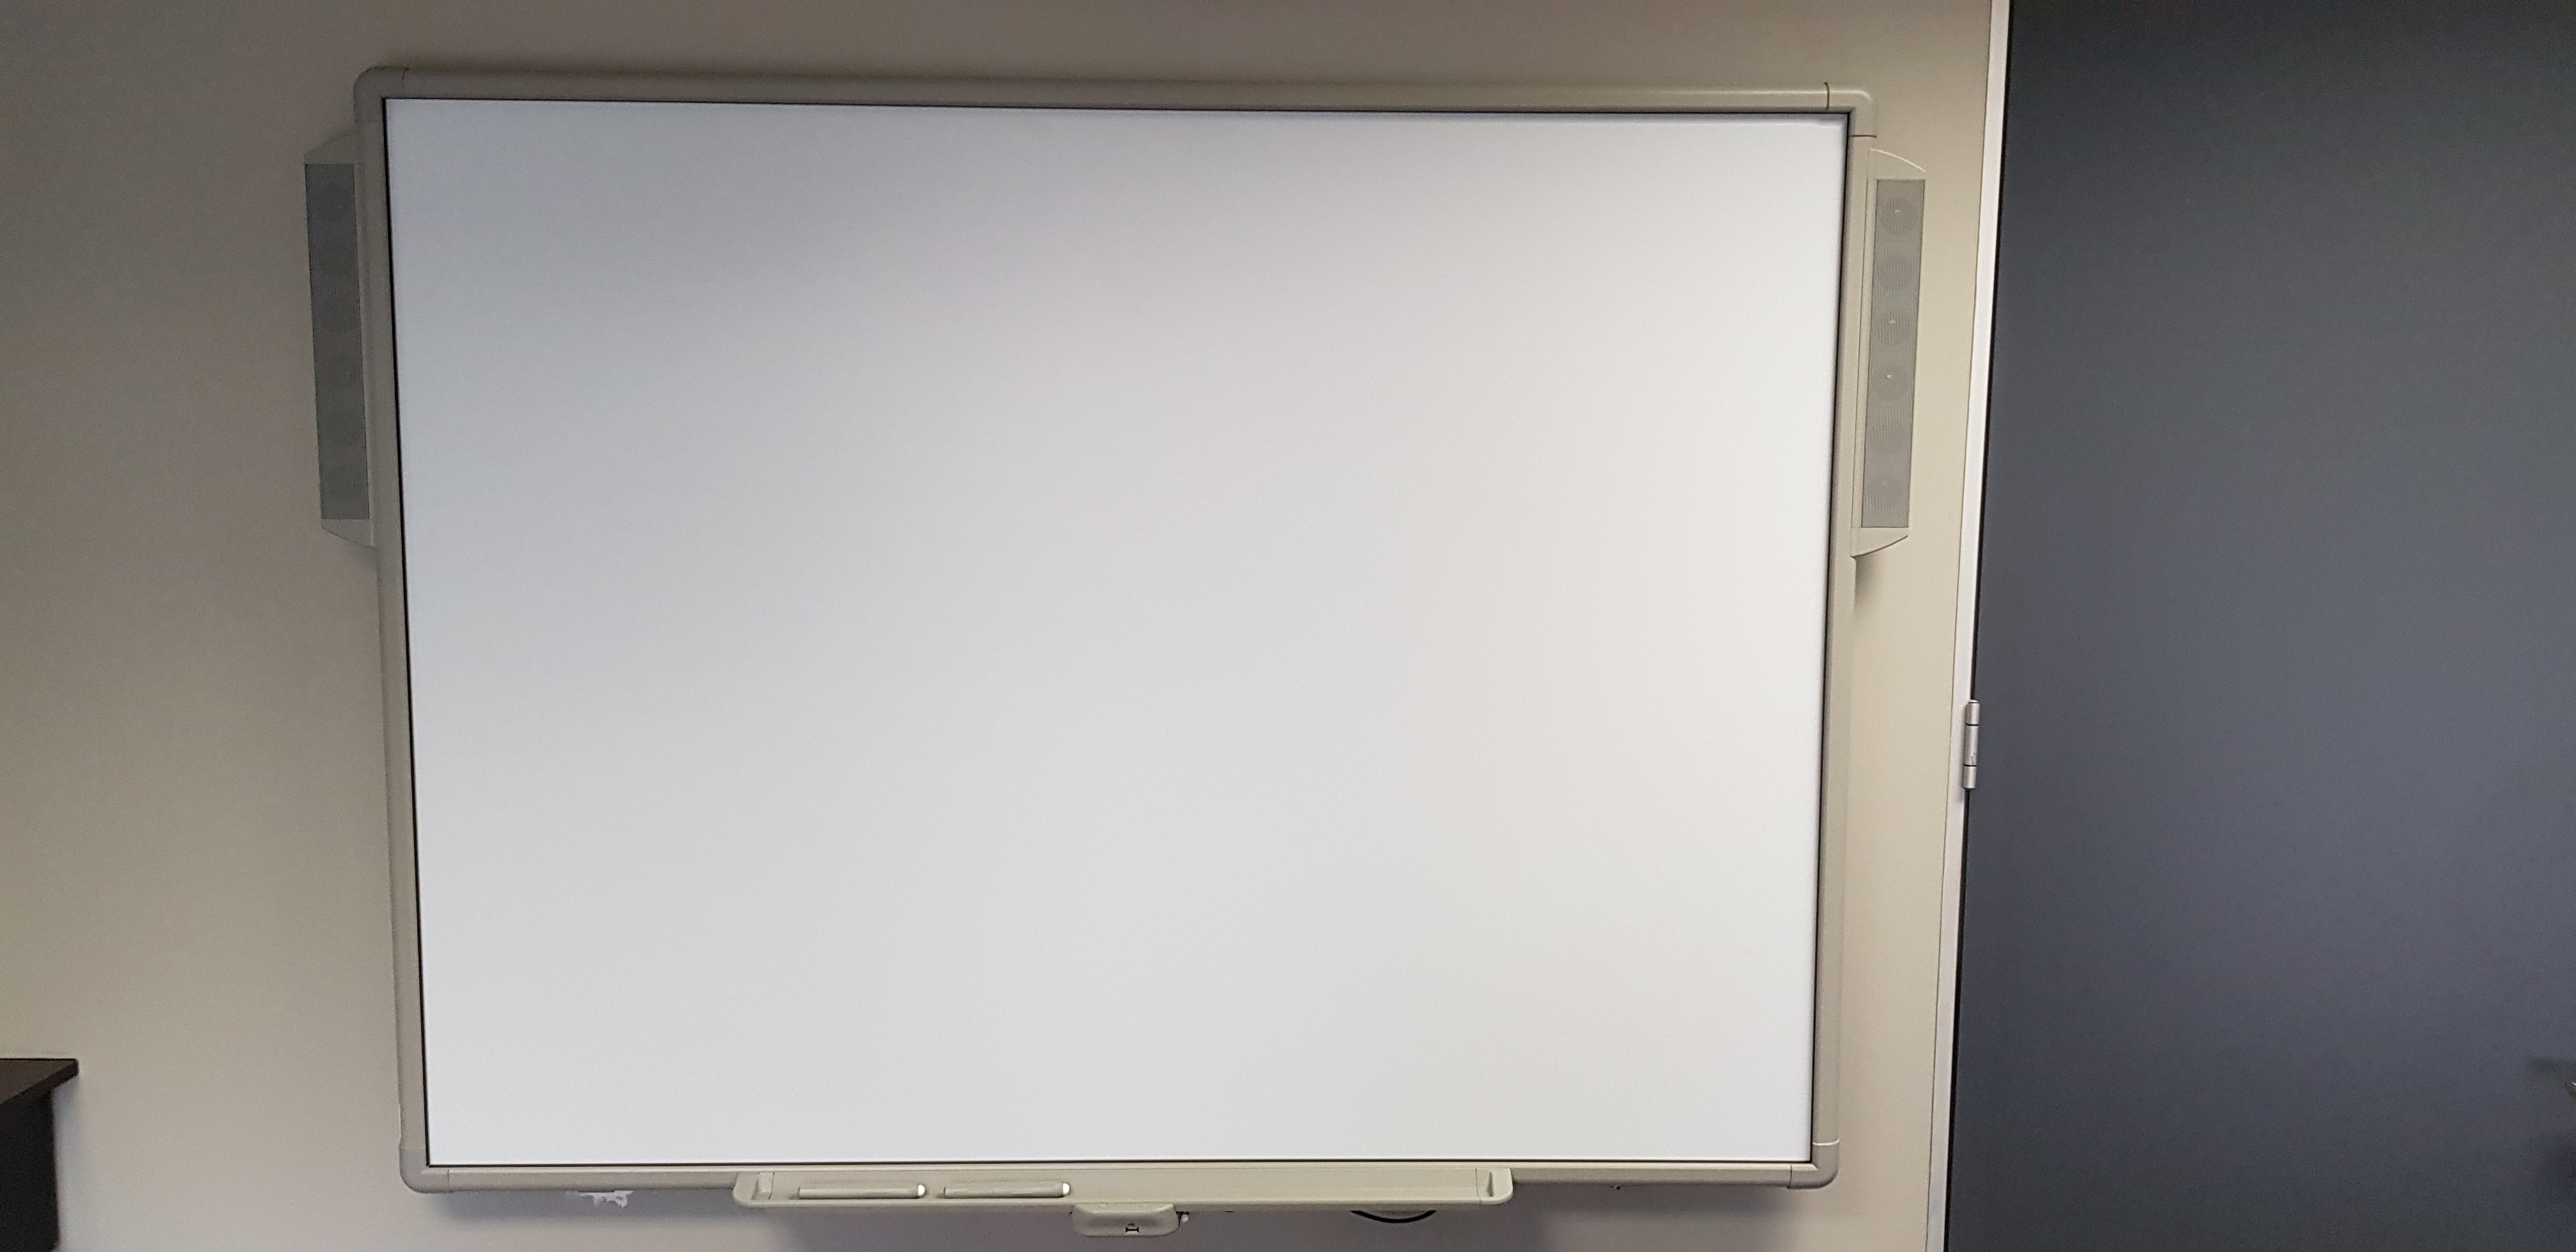 deftech interactive whiteboard